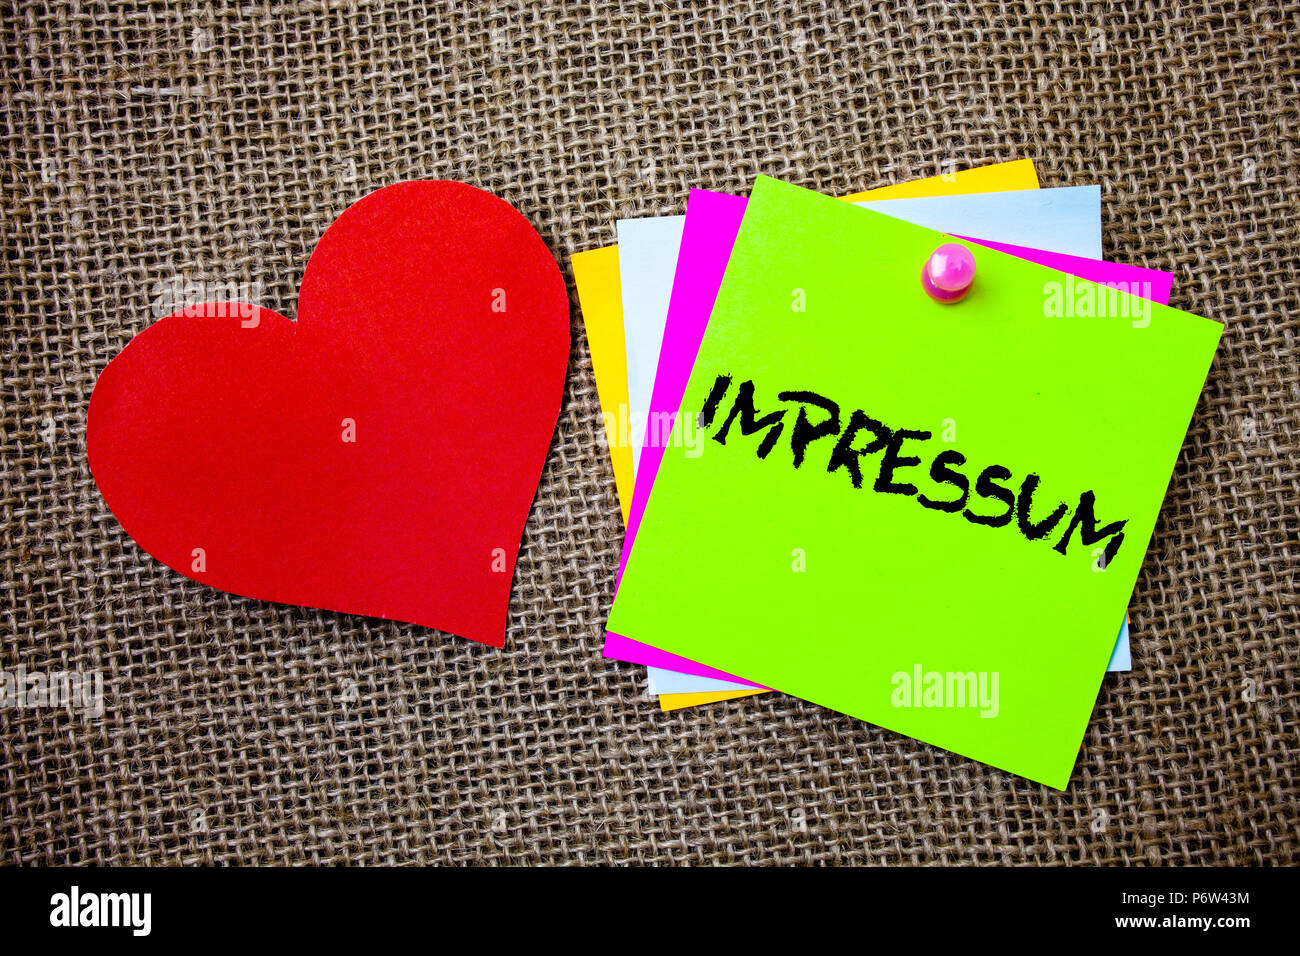 Text sign showing Impressum. Conceptual photo Impressed Engraved Imprint German statement ownership authorship Ideas things to do messages intentions  - Stock Image